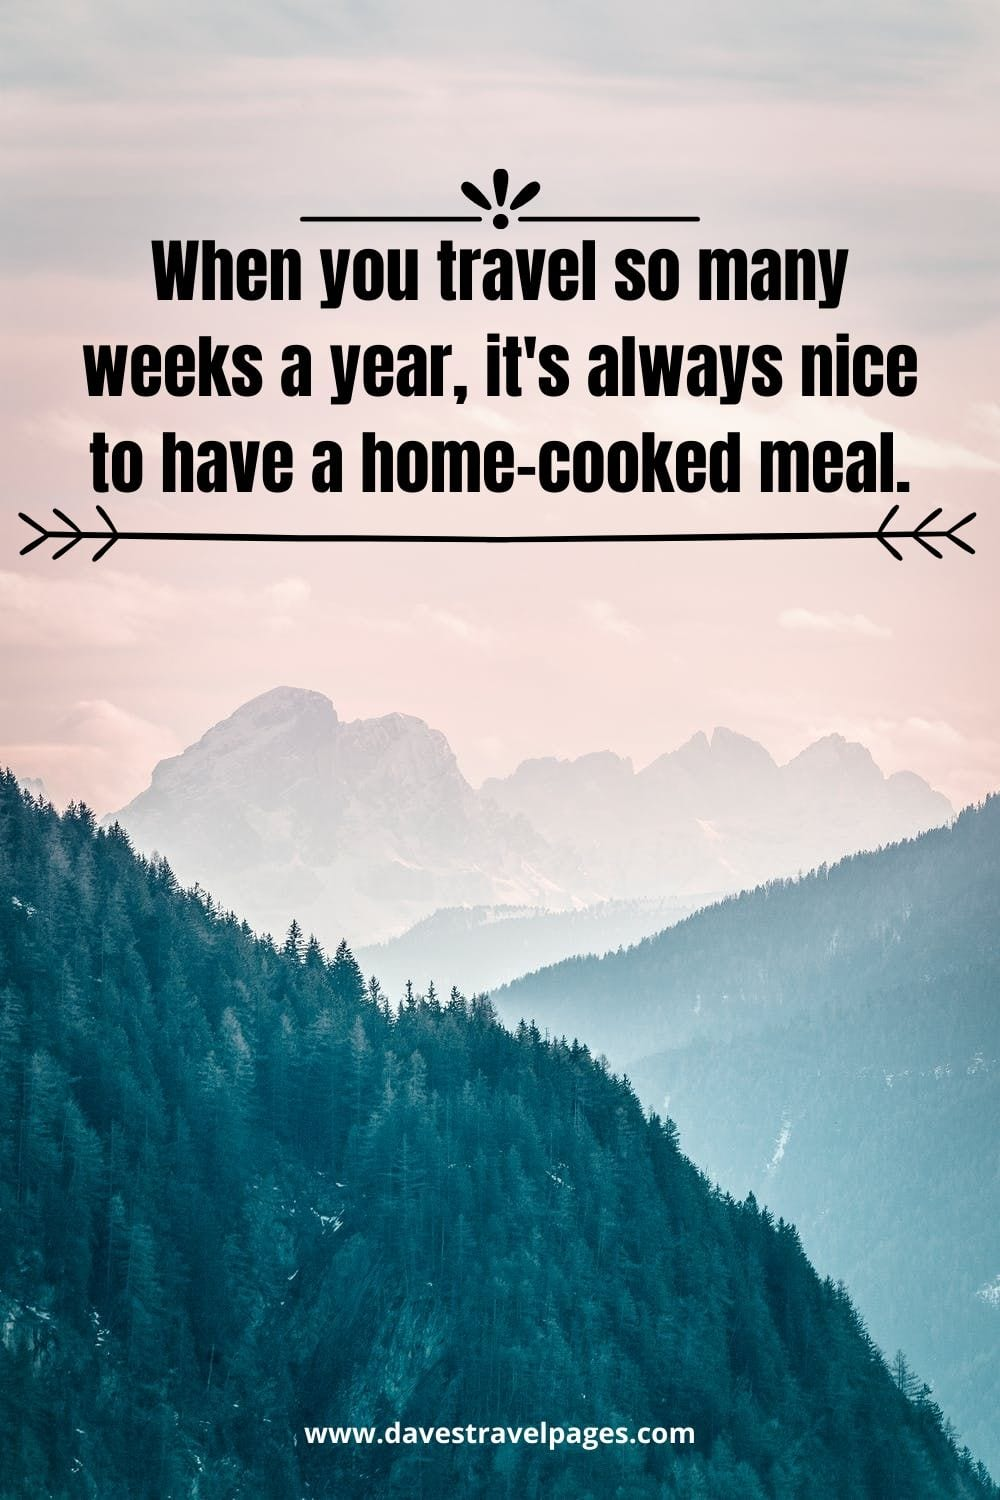 Travel quotes by famous people: When you travel so many weeks a year, it's always nice to have a home-cooked meal. Maria Sharapova